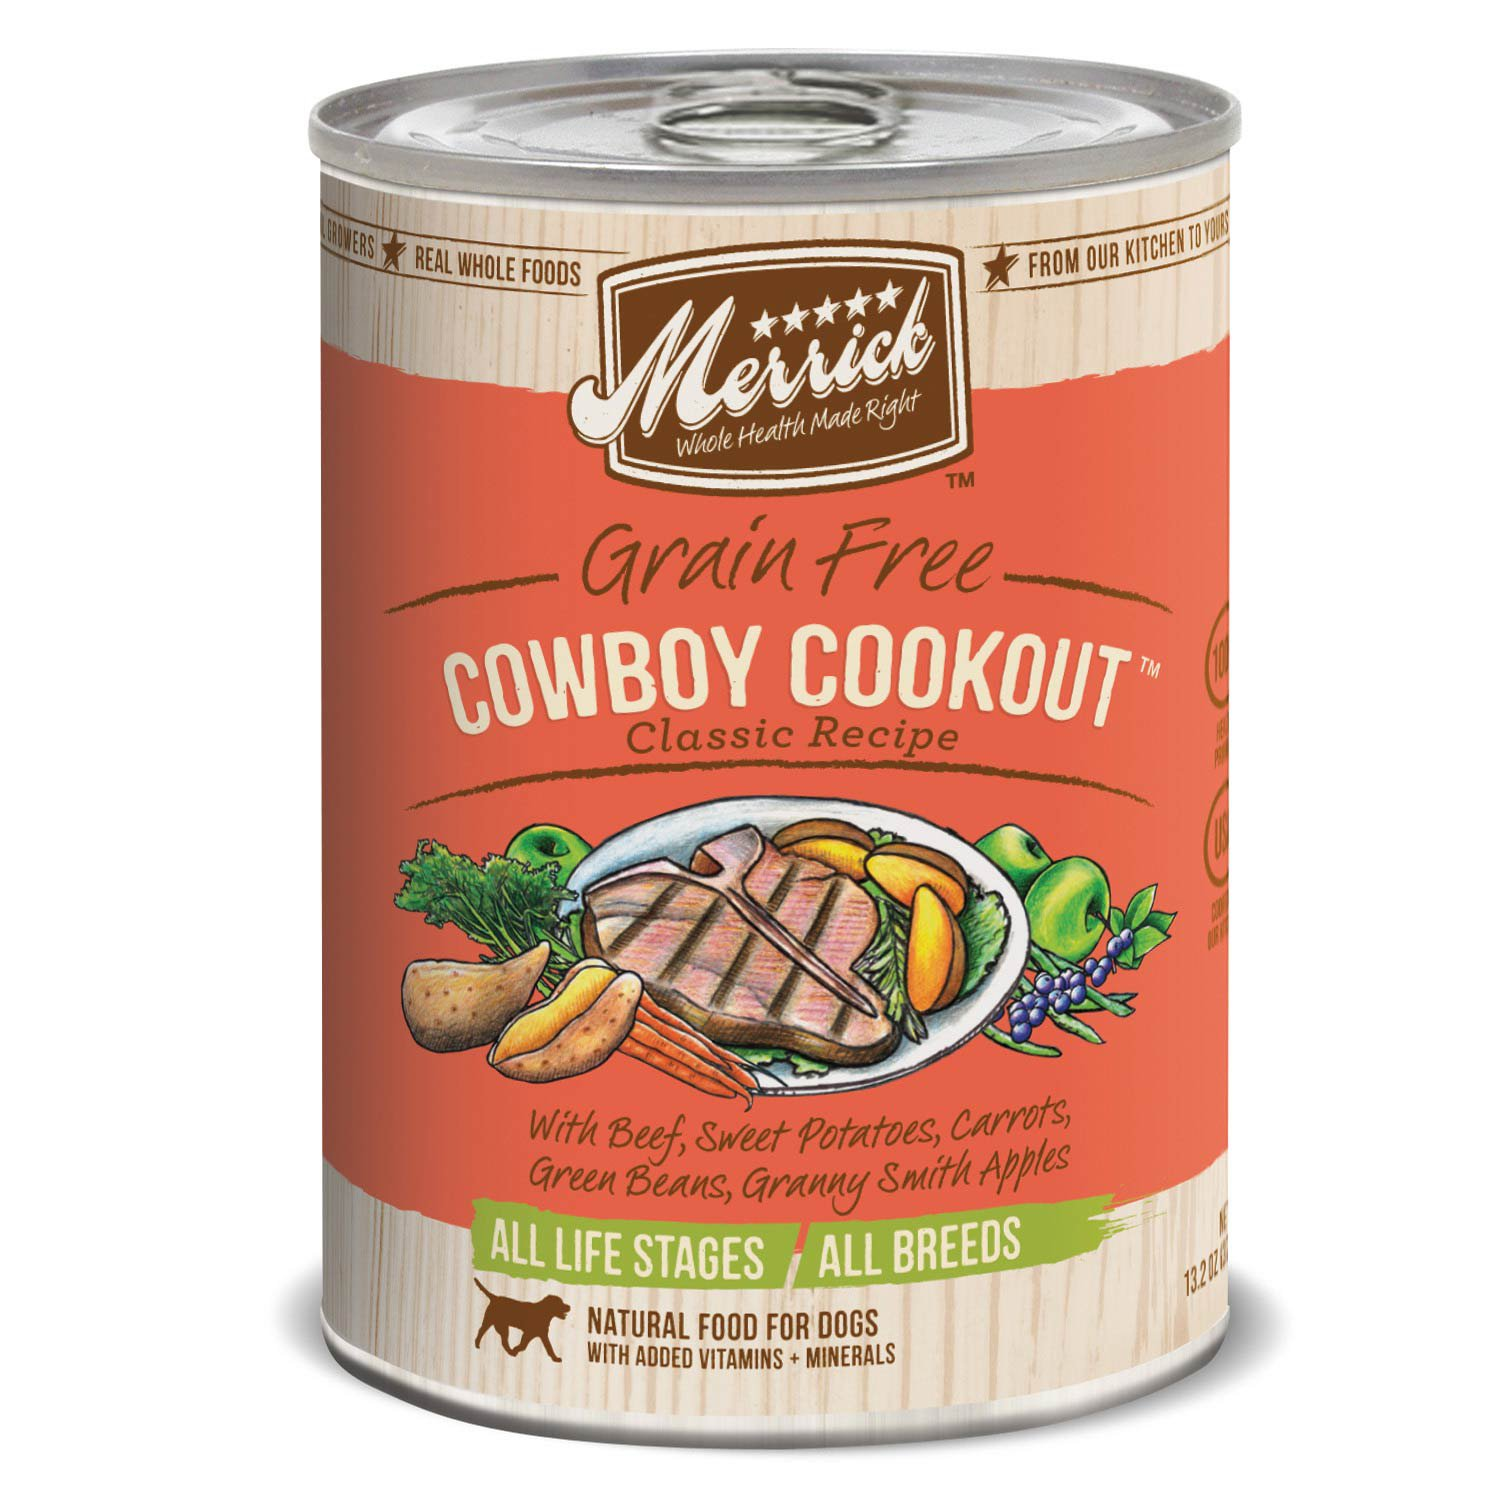 Merrick classic grain free cowboy cookout wet dog food petco forumfinder Images